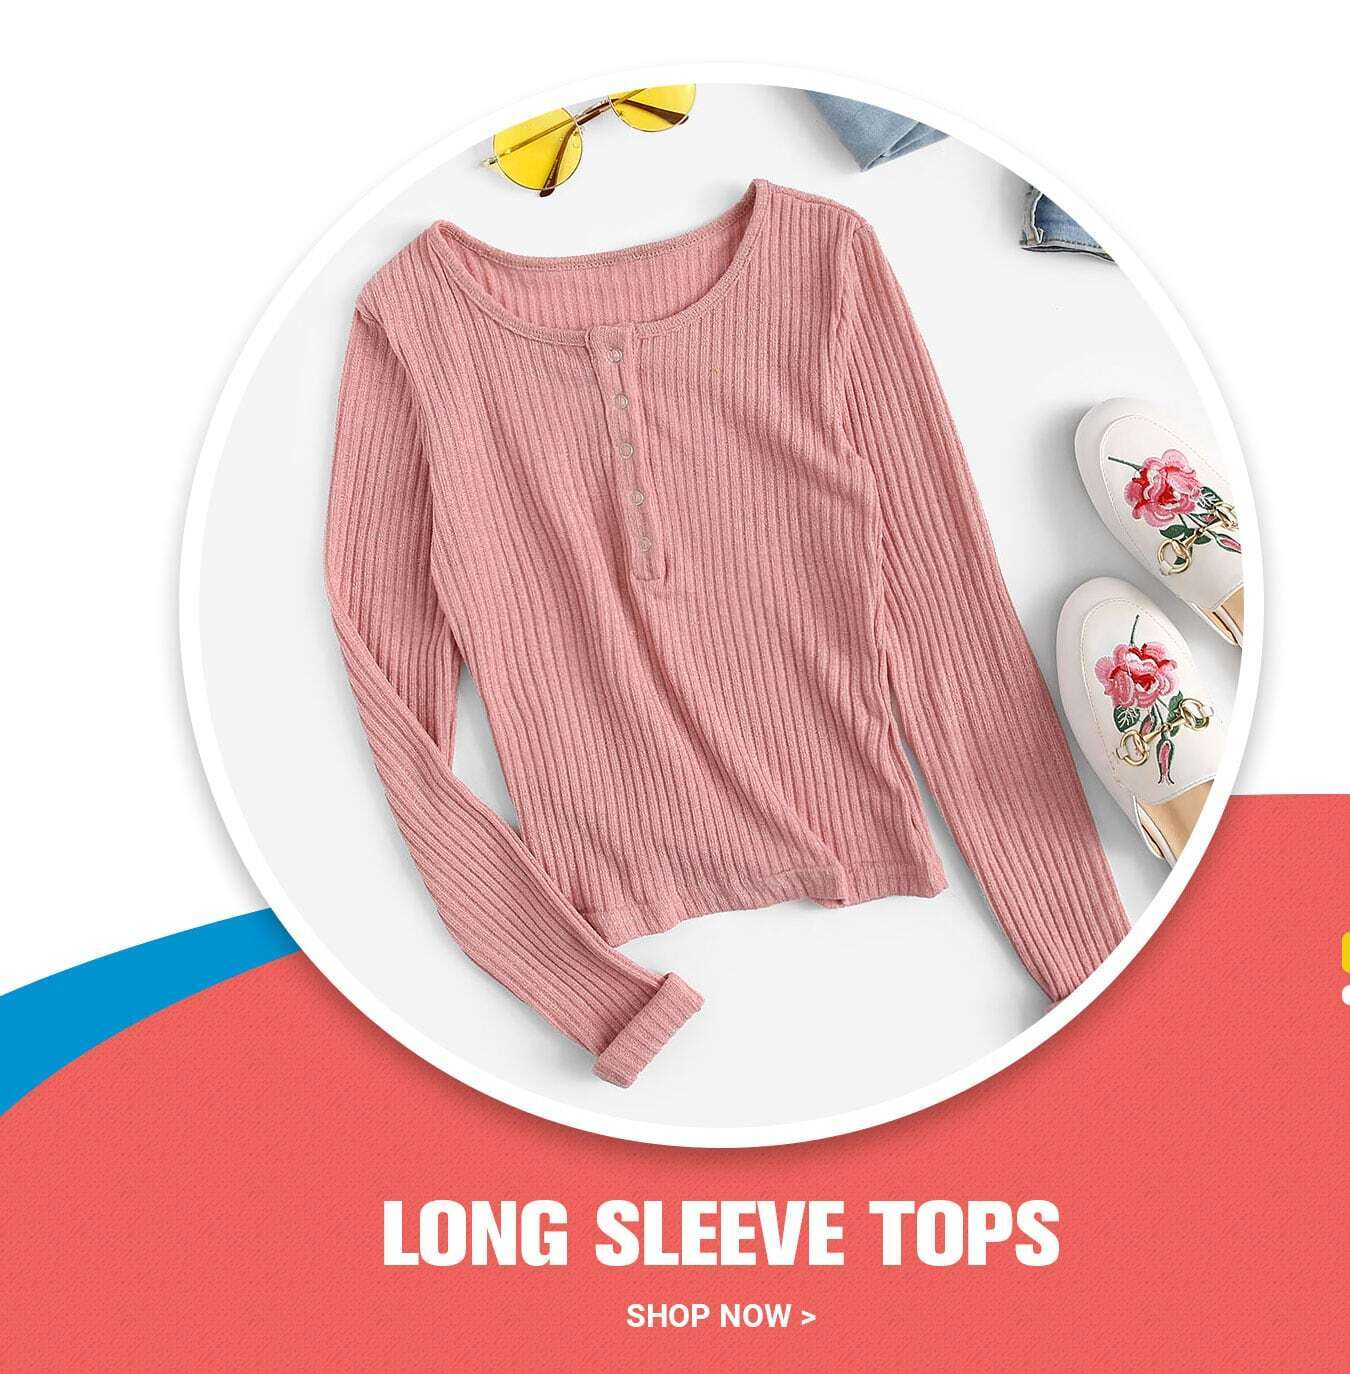 7e20cde428555 Shop The Latest Girls & Guys Fashion Trends at ROMWE